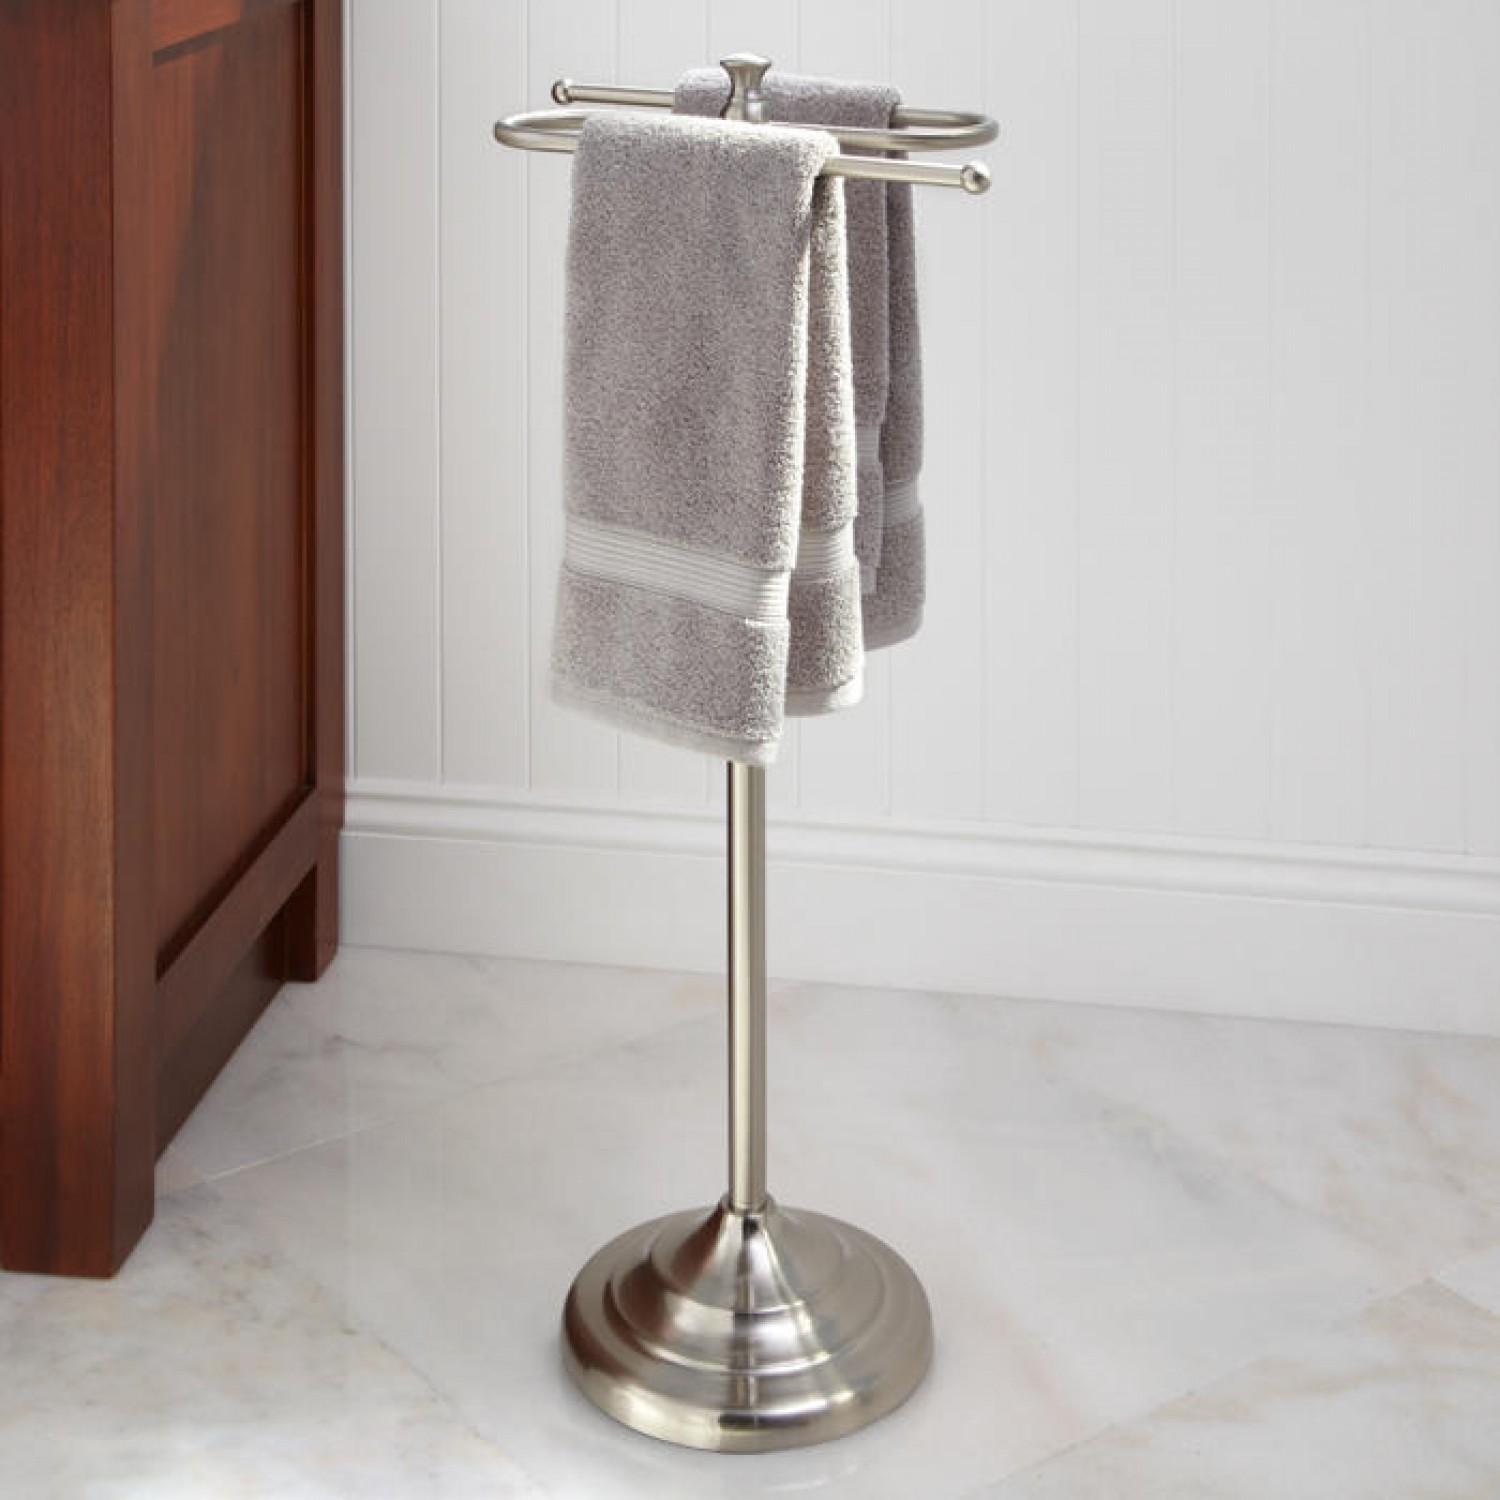 Free Standing Towel Rack Ideas